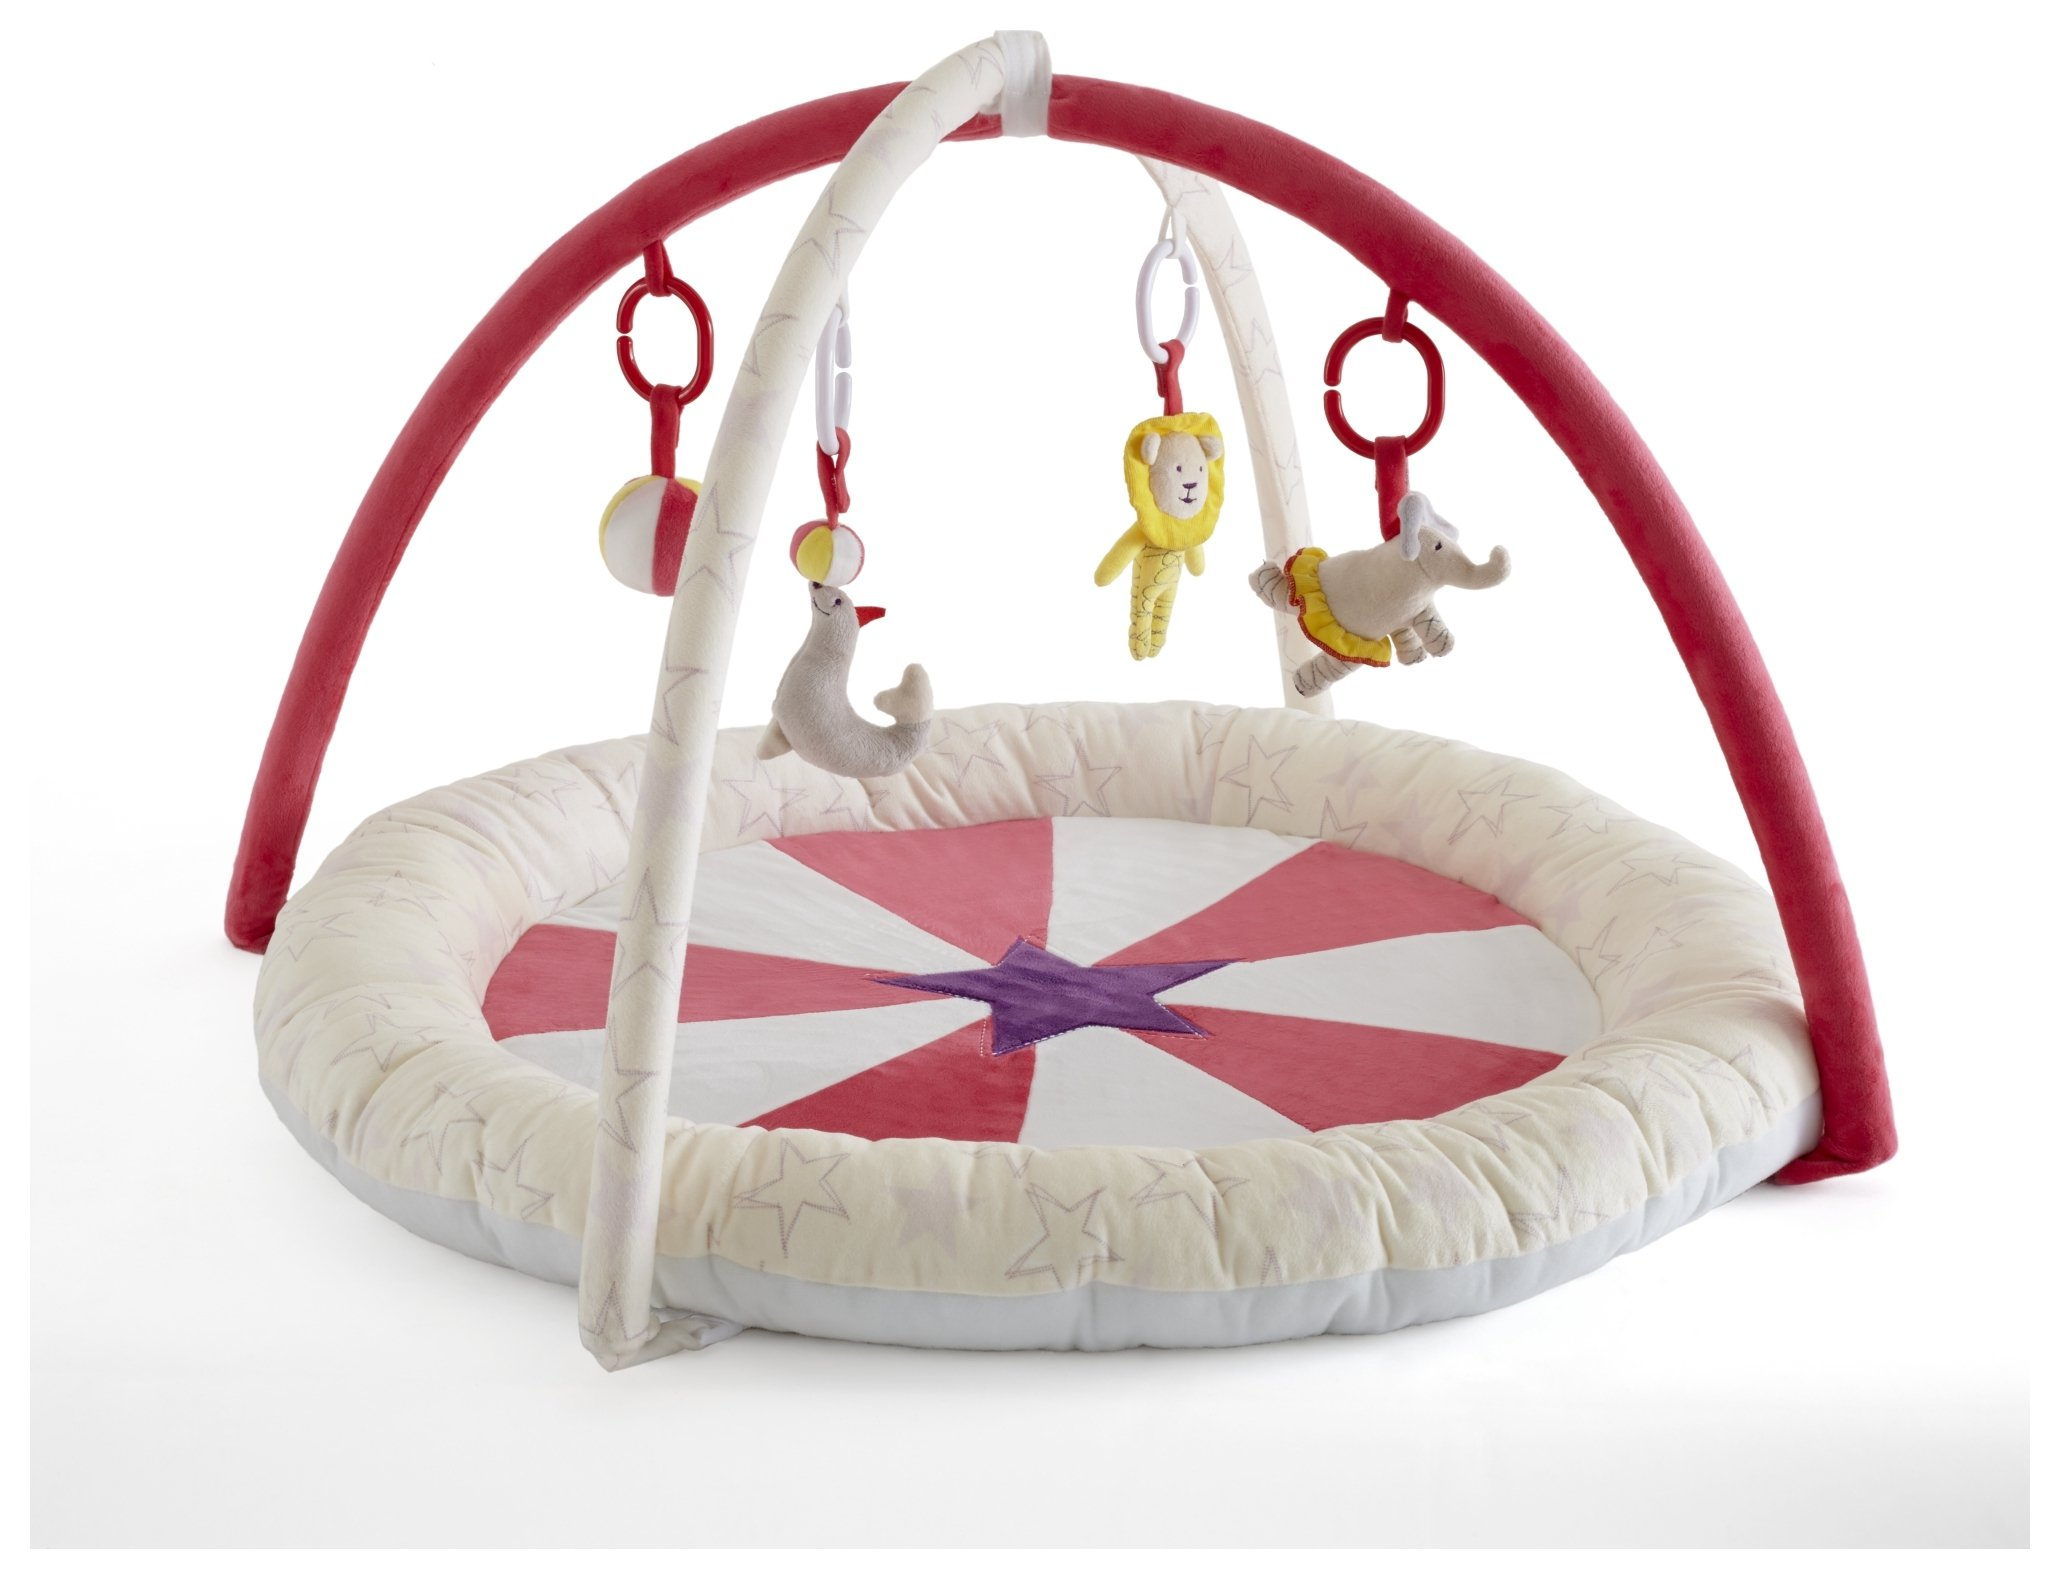 tutti bambini helter skelter play gym.